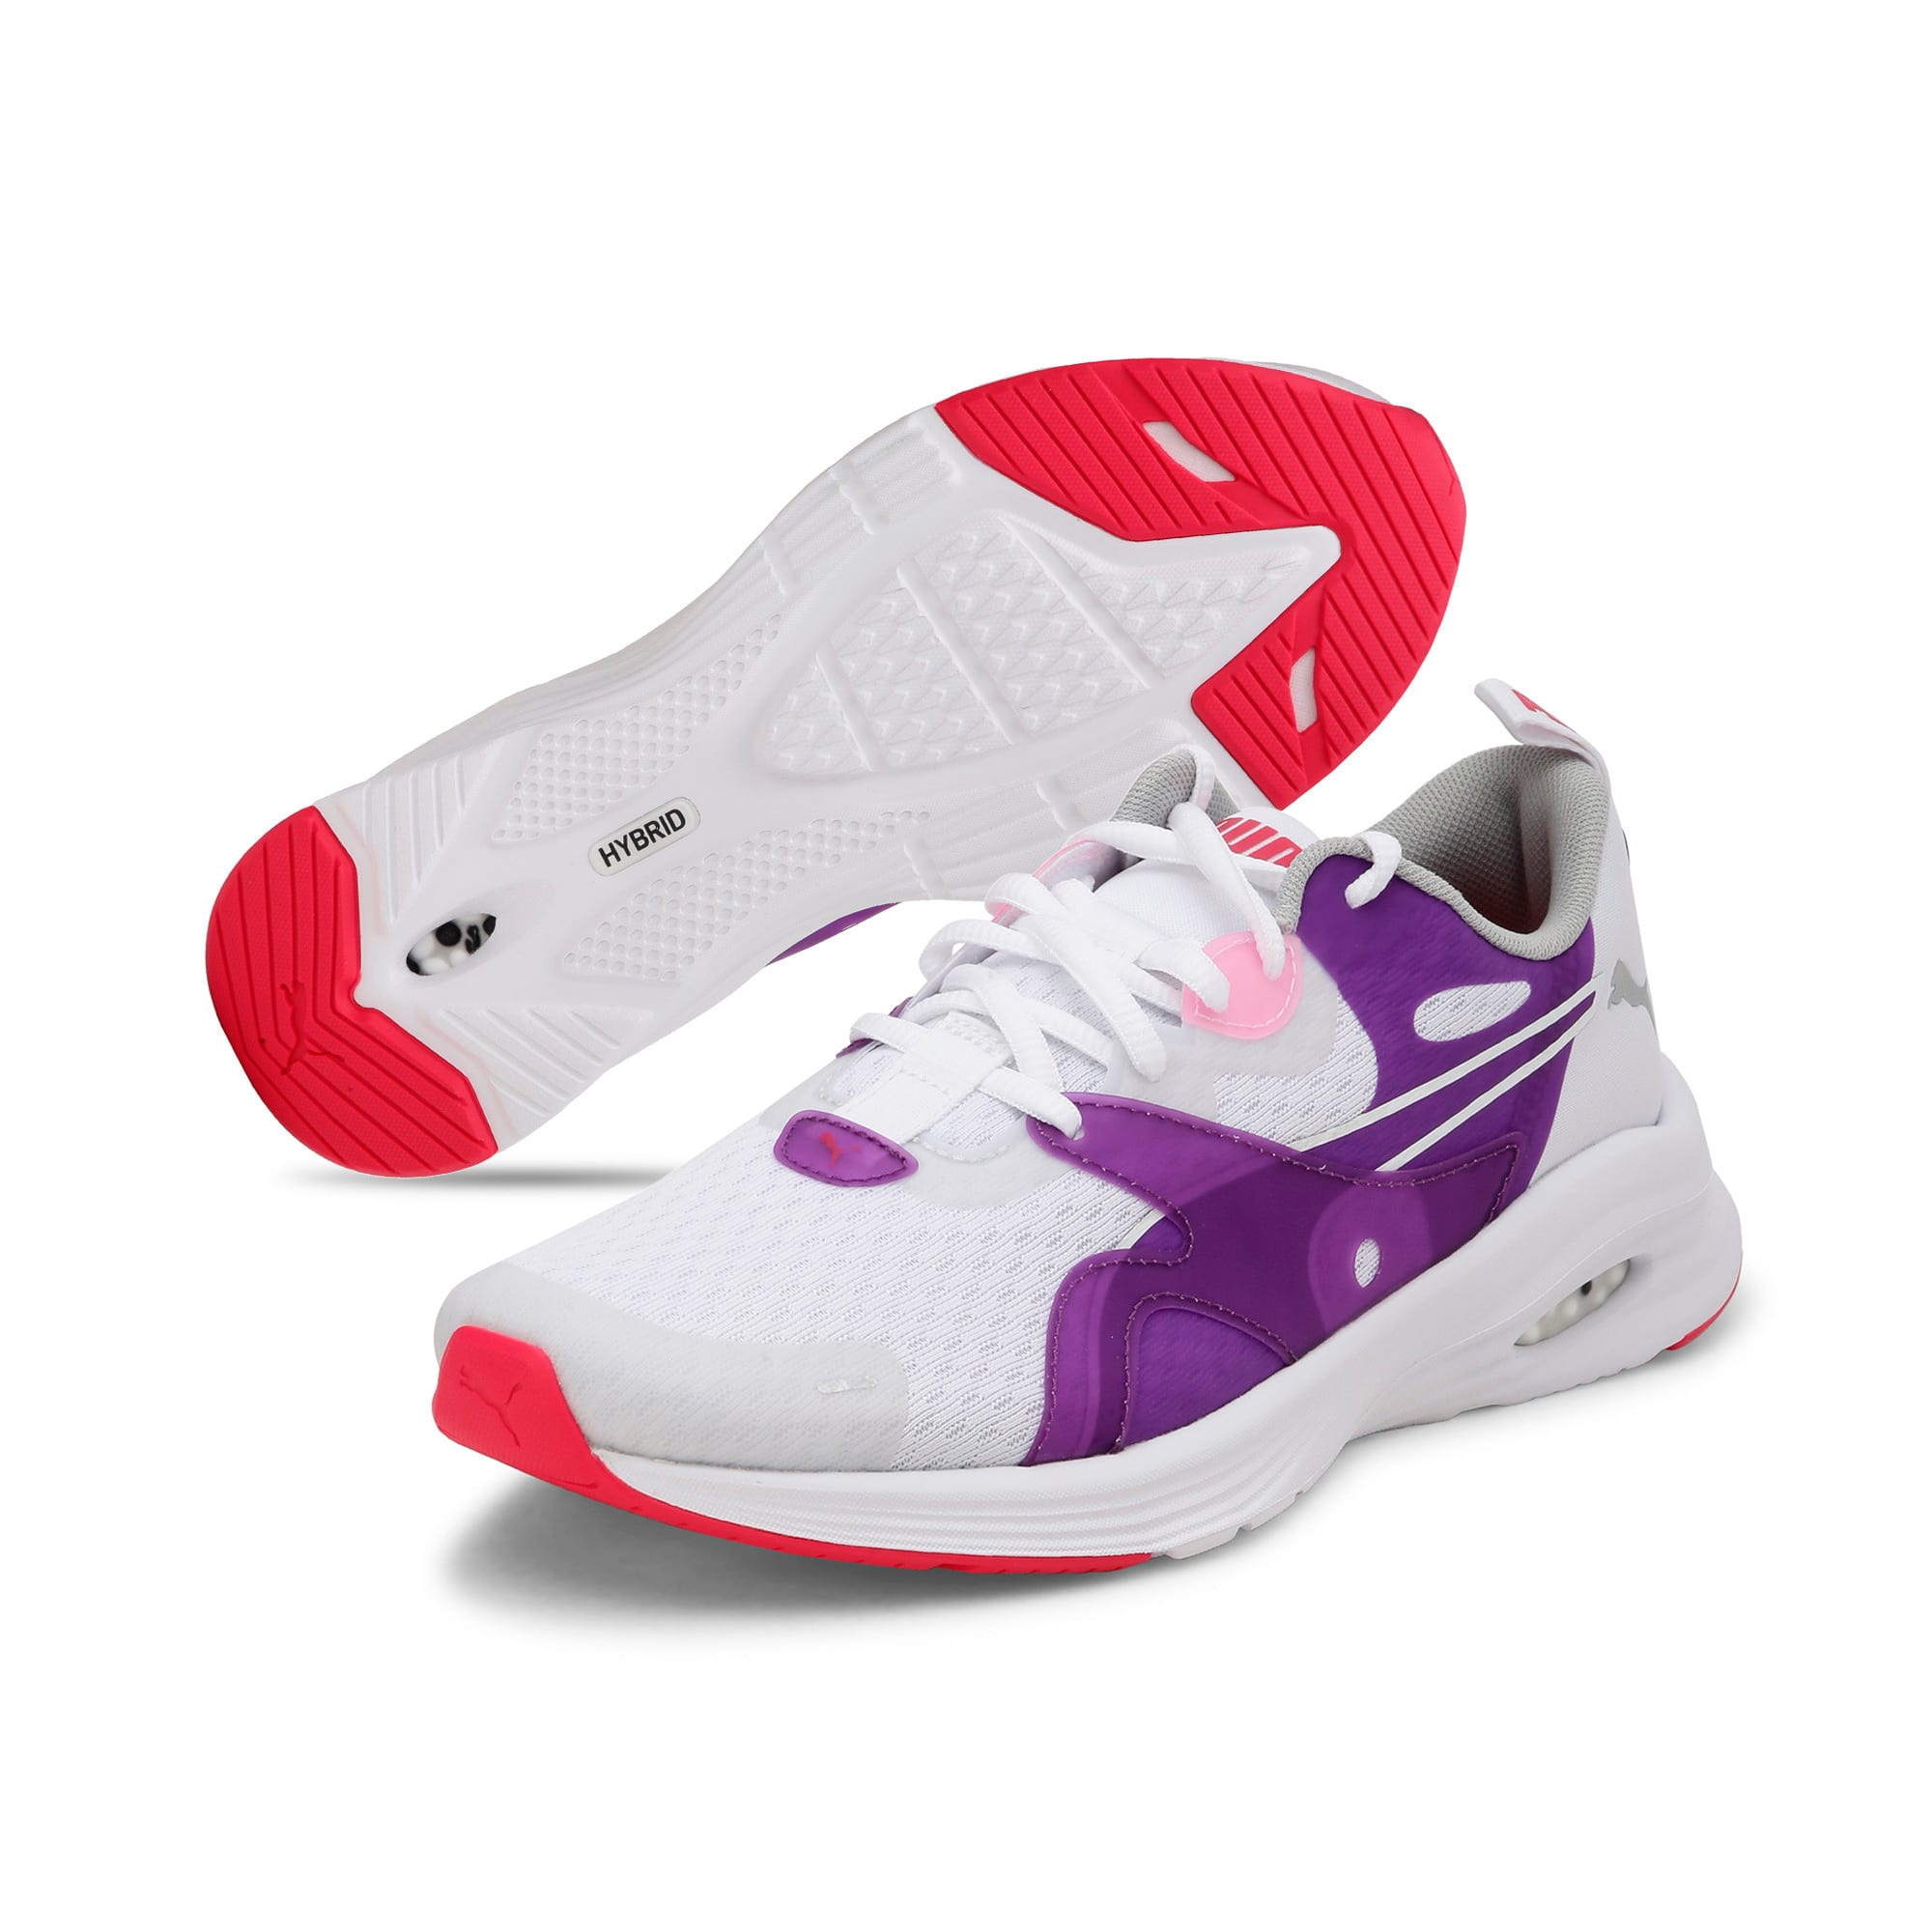 Thumbnail 2 of HYBRID Fuego Youth Trainers, Puma White-Royal Lilac, medium-IND